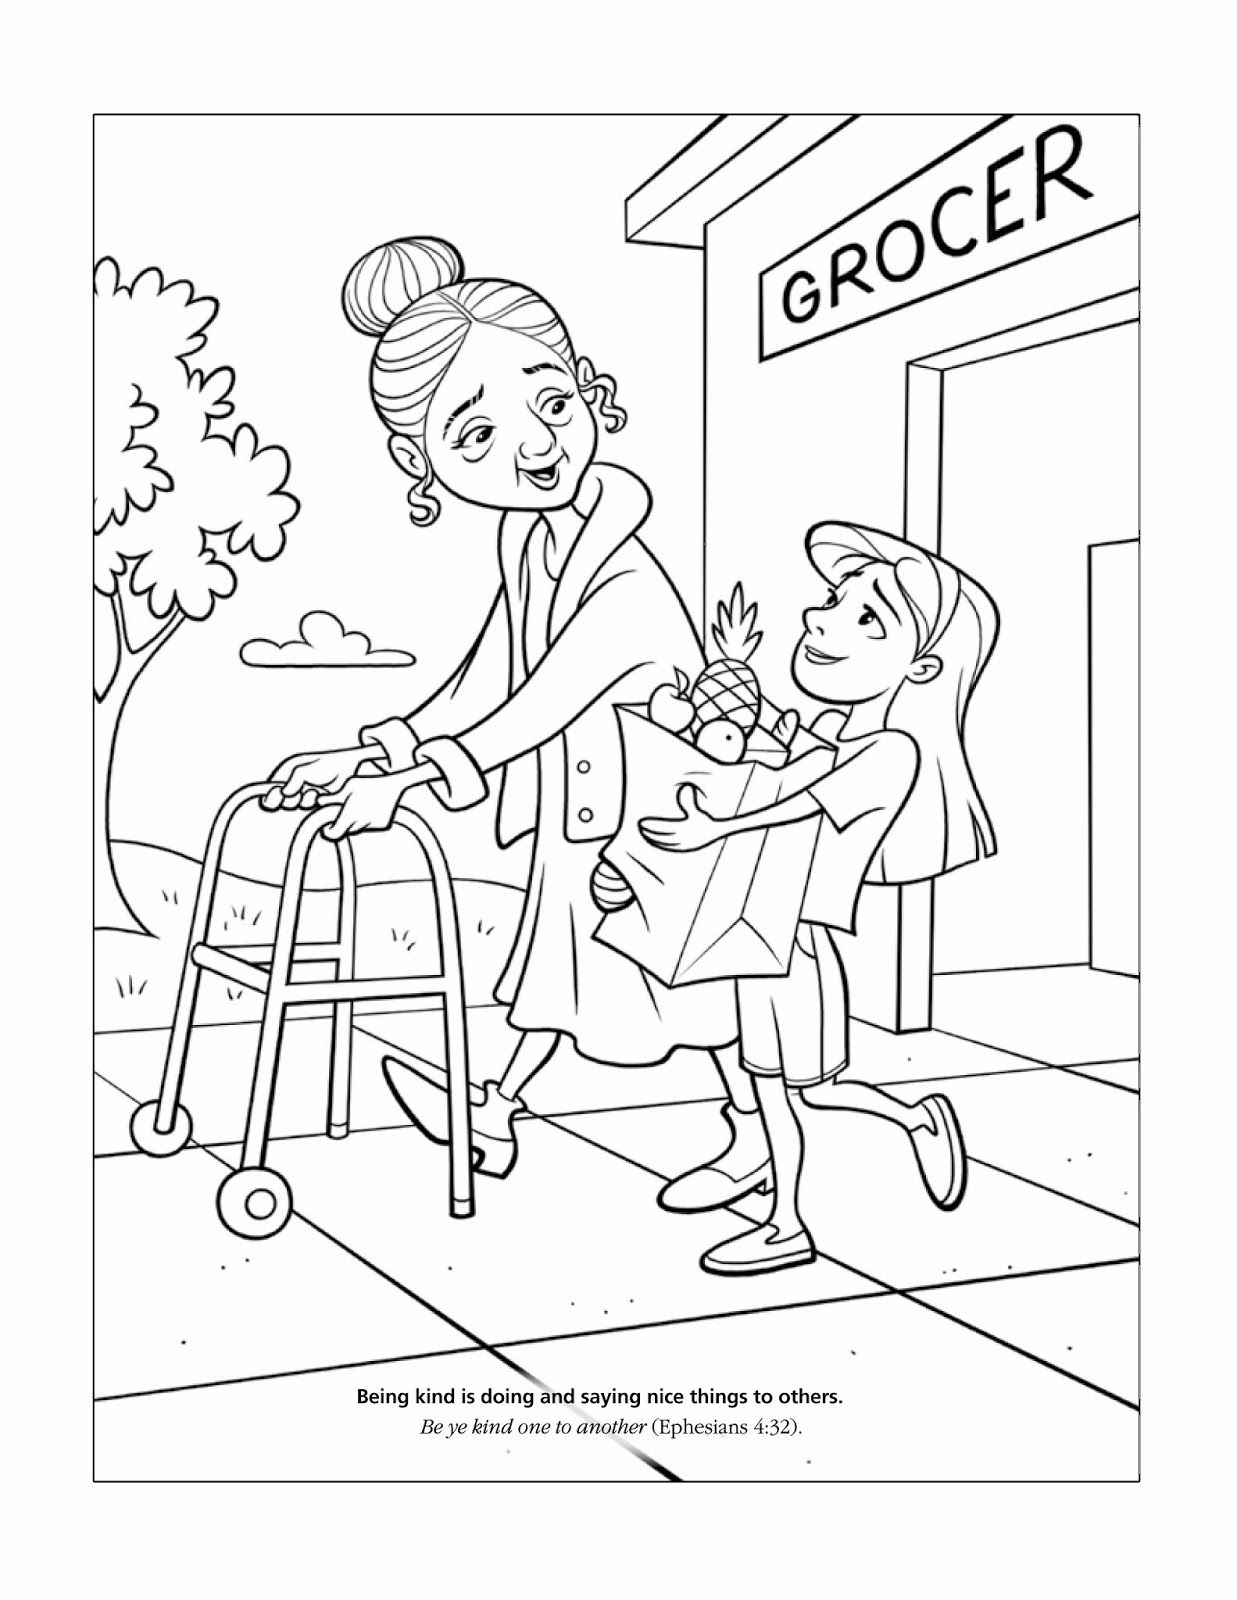 EPHESIANS 4 32 LDS Teaching Visuals Coloring Pages